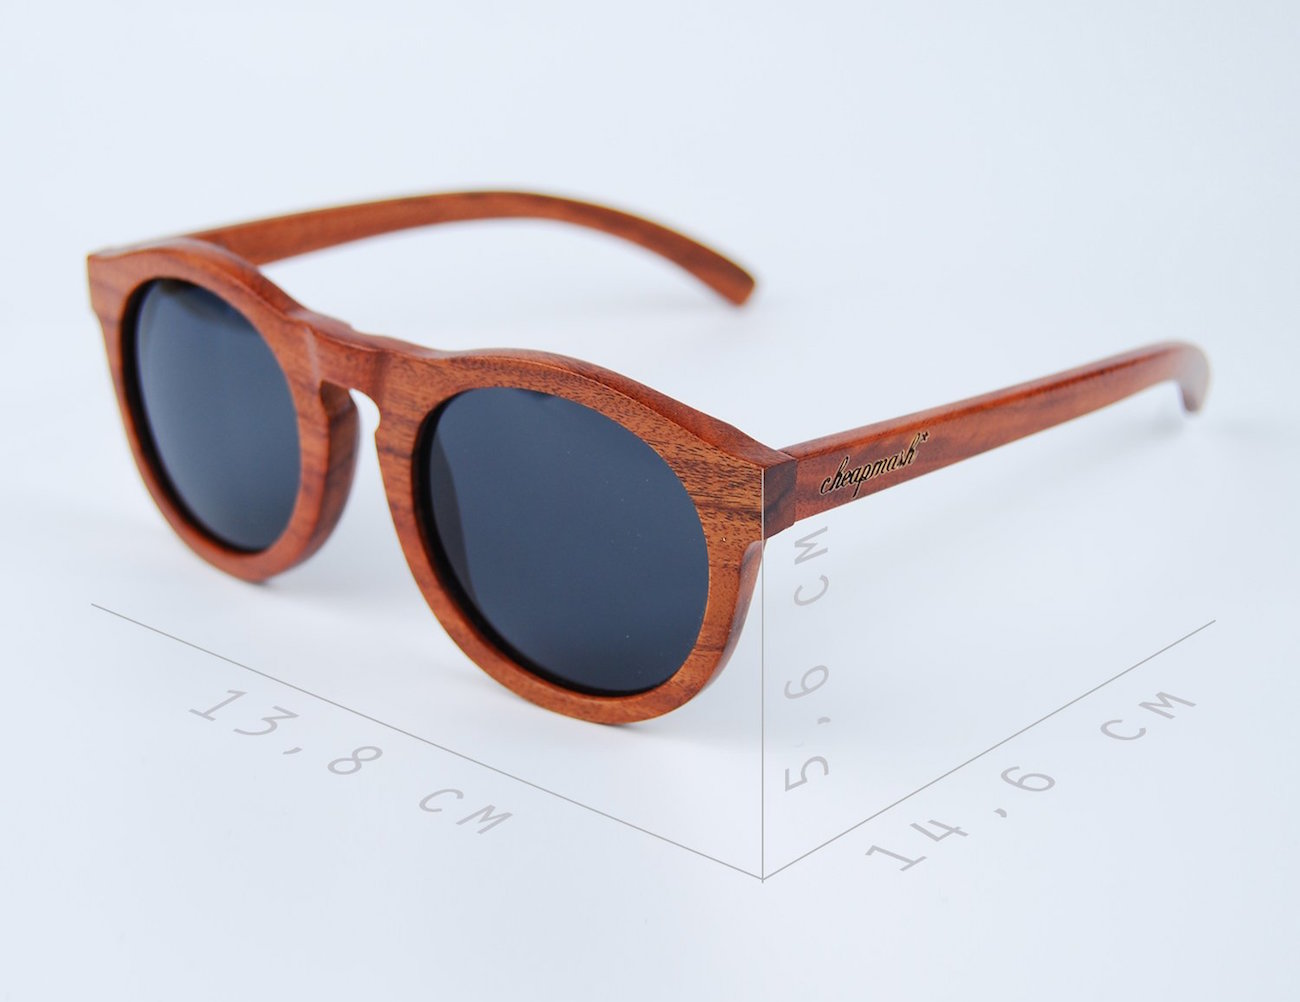 sunglasses design  Onyx Wooden Sunglasses - Handmade Design With Polarized Lenses ...